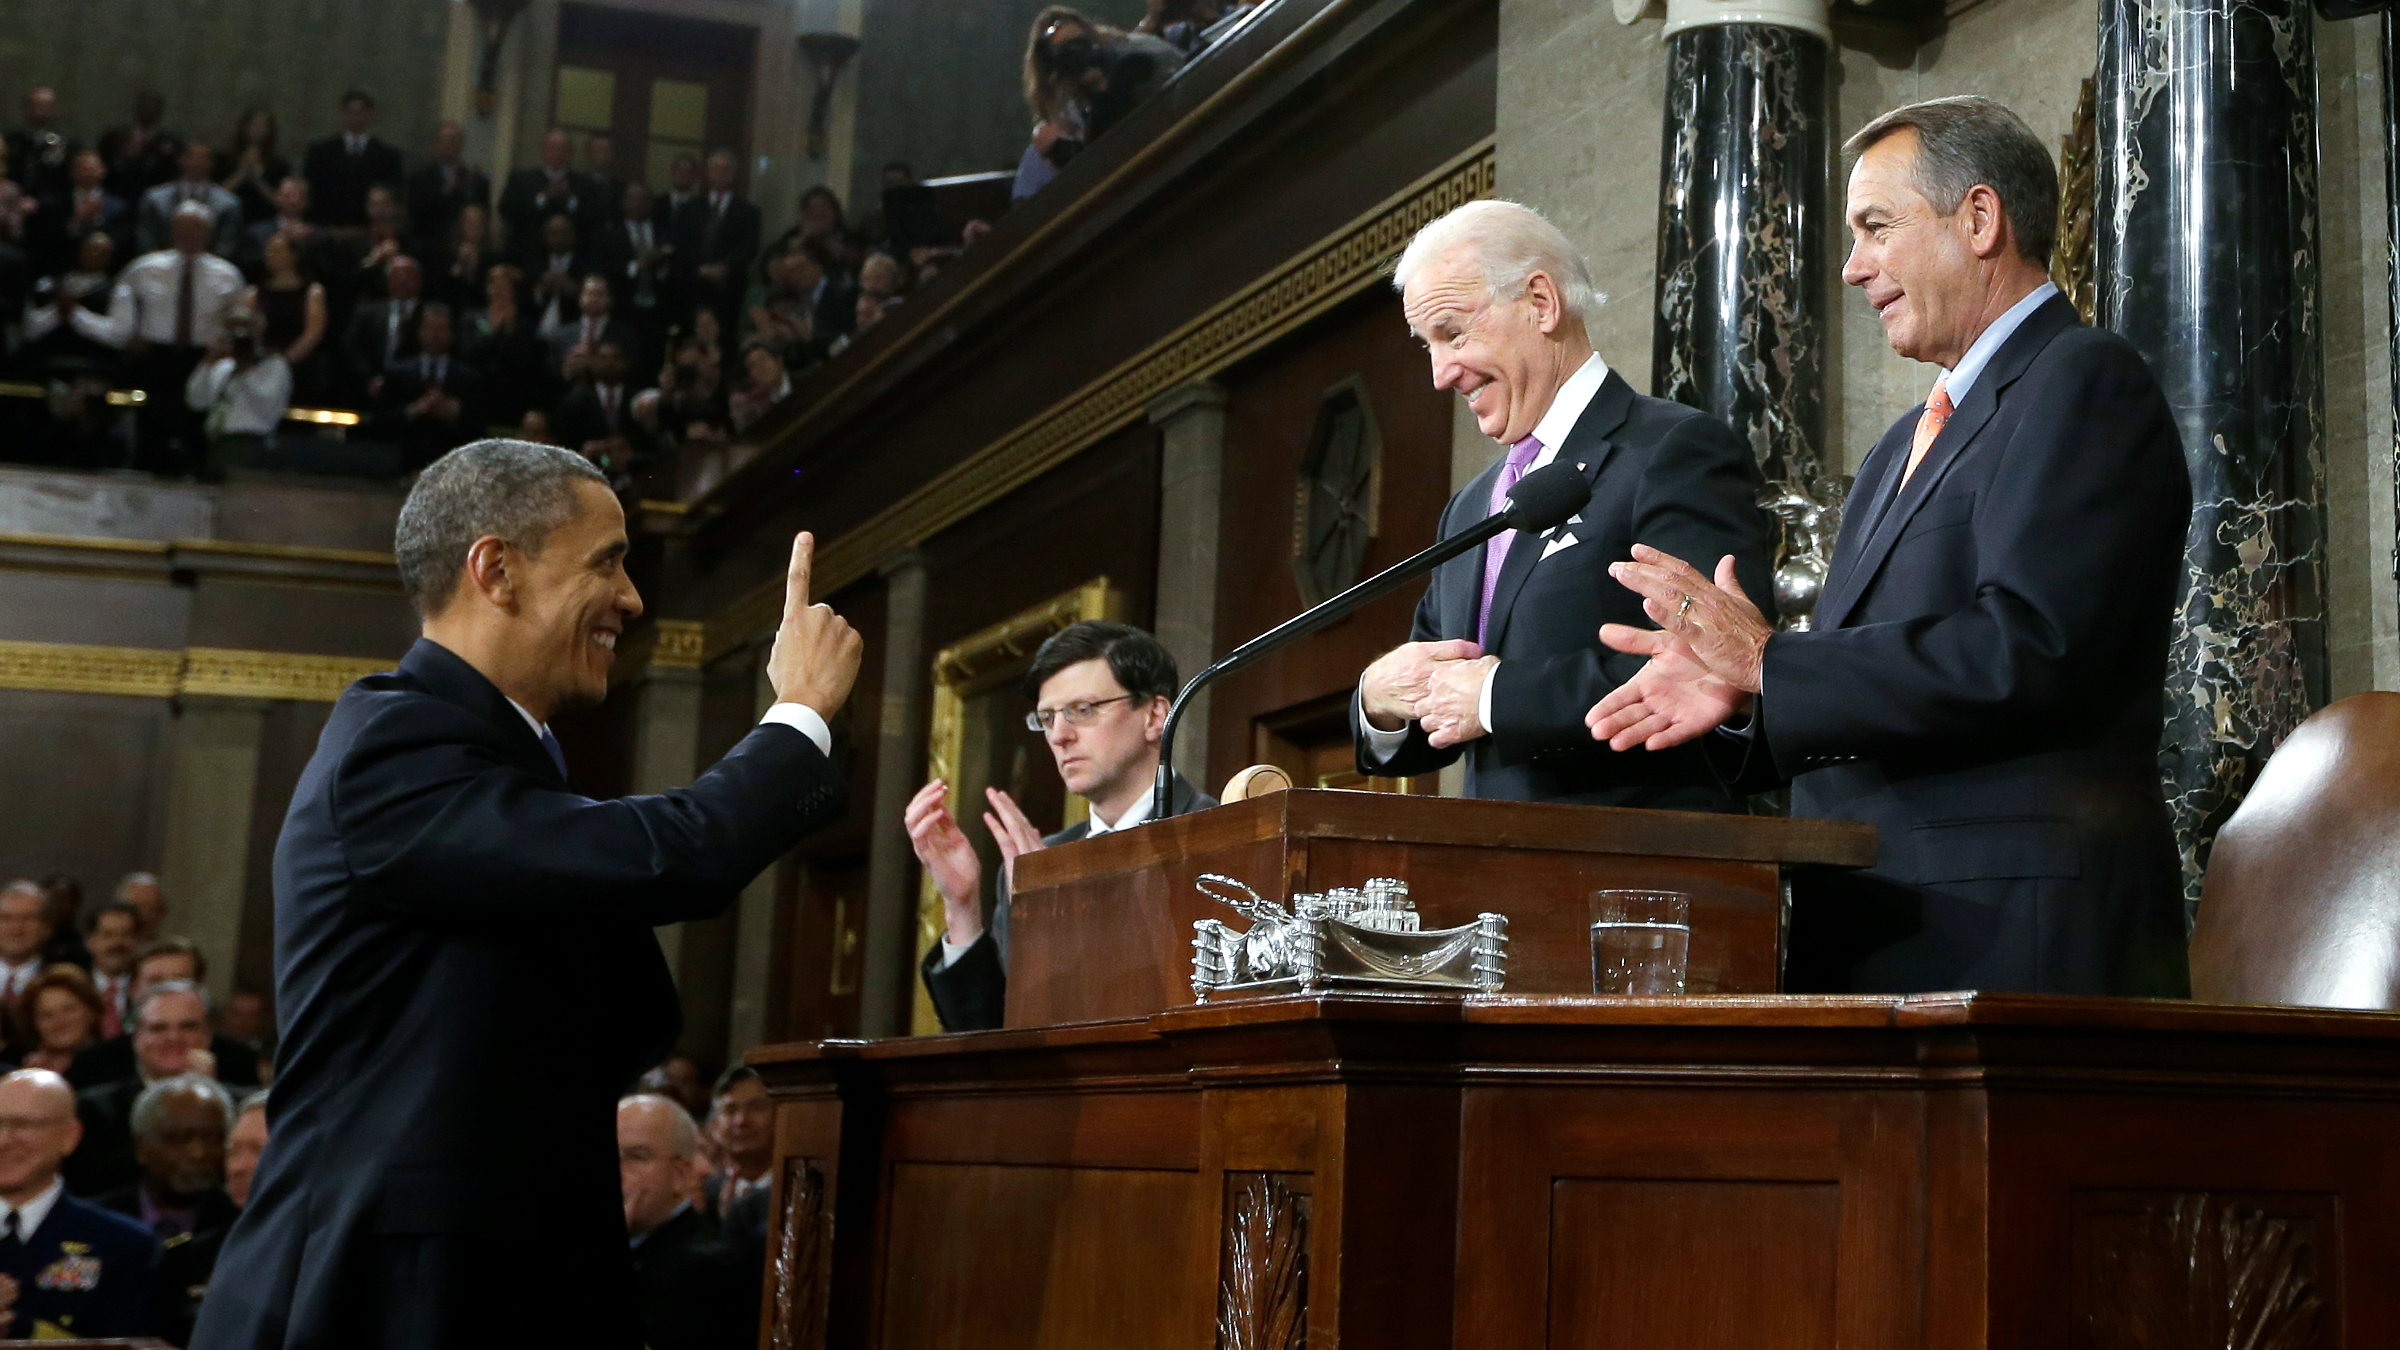 DATE IMPORTED:February 13, 2013 U.S. President Barack Obama (L) gestures toward Vice President Joe Biden (C) and House Speaker John Boehner (R-OH) prior to delivering his State of the Union address on Capitol Hill in Washington, February 12, 2013.